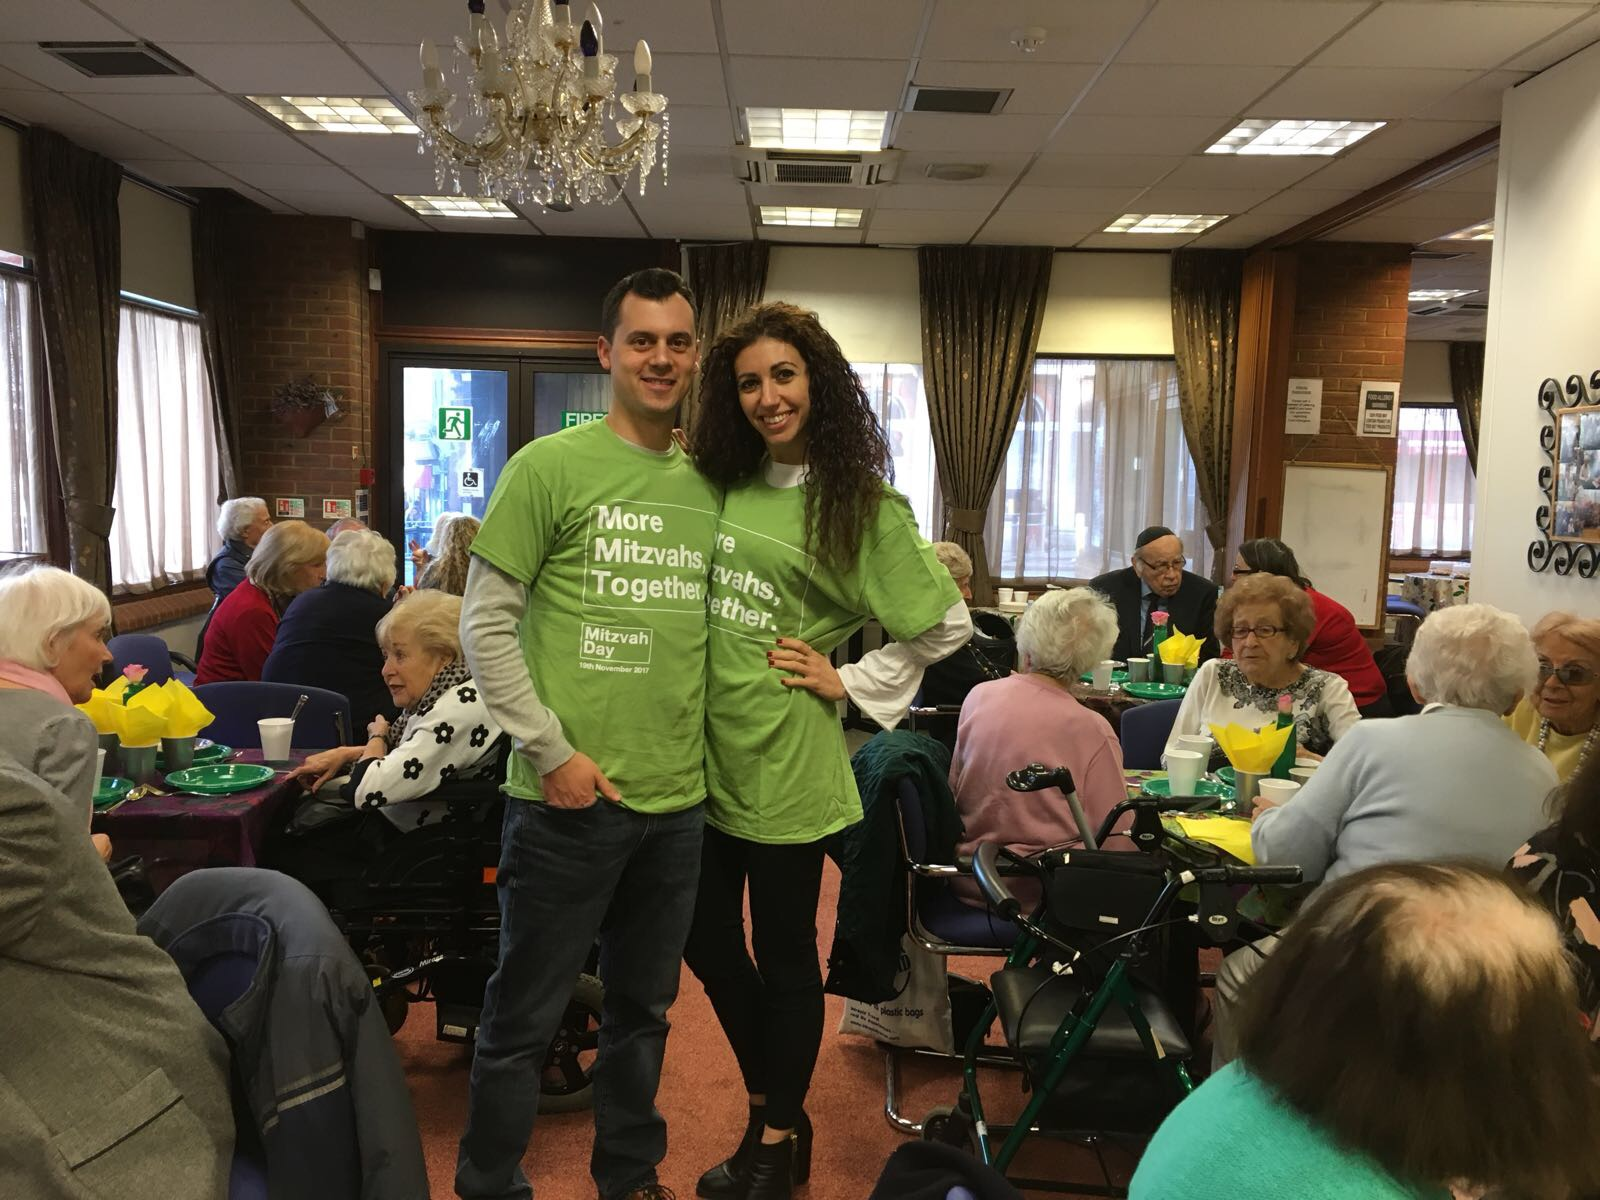 Simon Murray and Julie on Mitzvah Day at Holocaust Survivors Centre - the day after he proposed